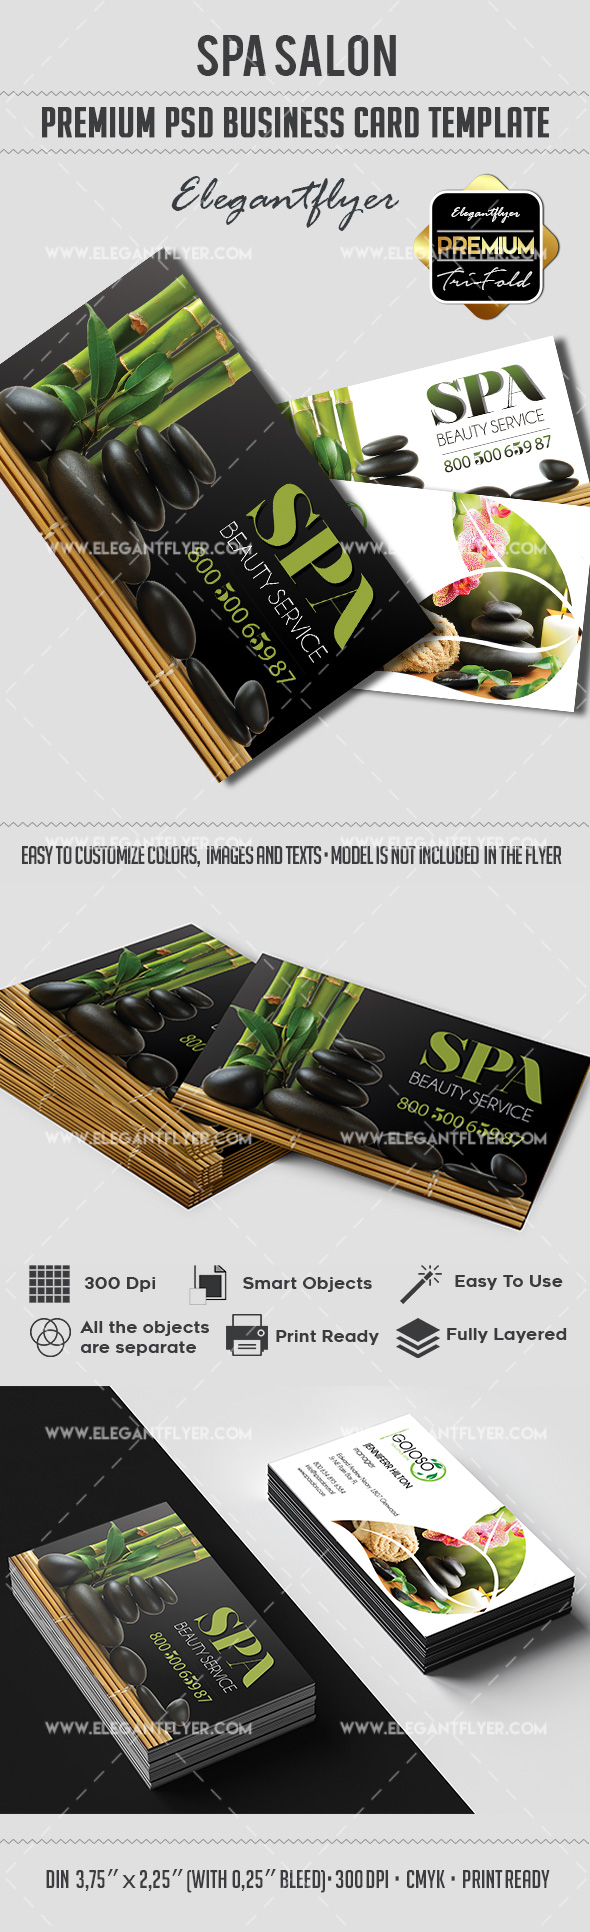 Spa Salon – Premium Business card PSD Template